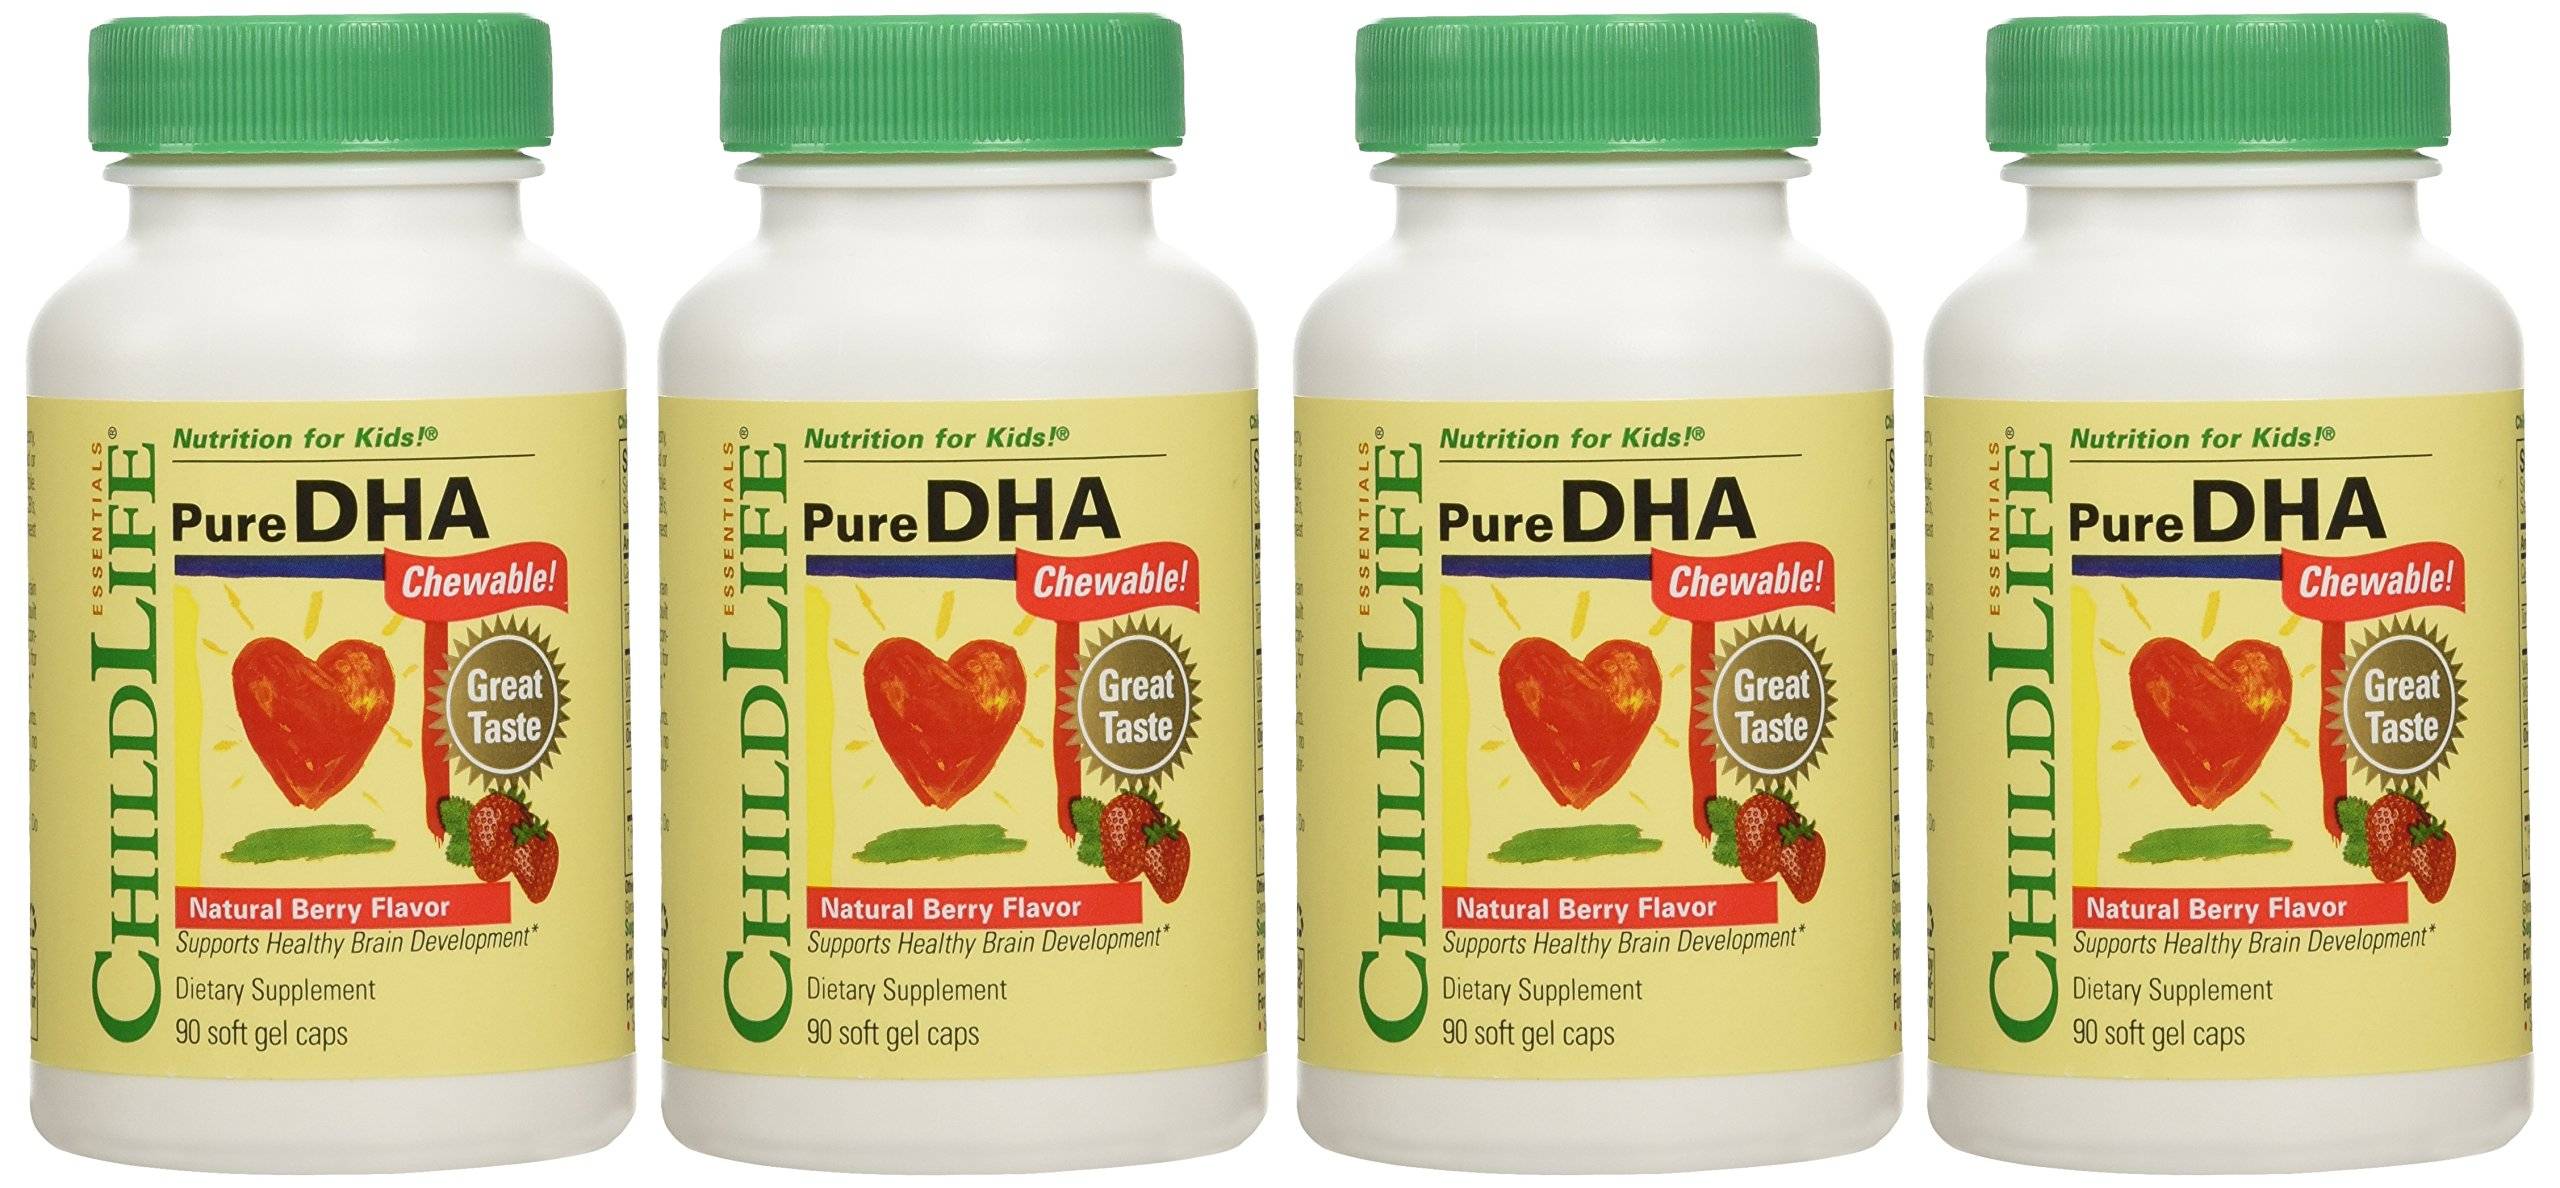 Child Life - Pure DHA Soft Gel Capsules - 4 Pack of 90Count Bottles